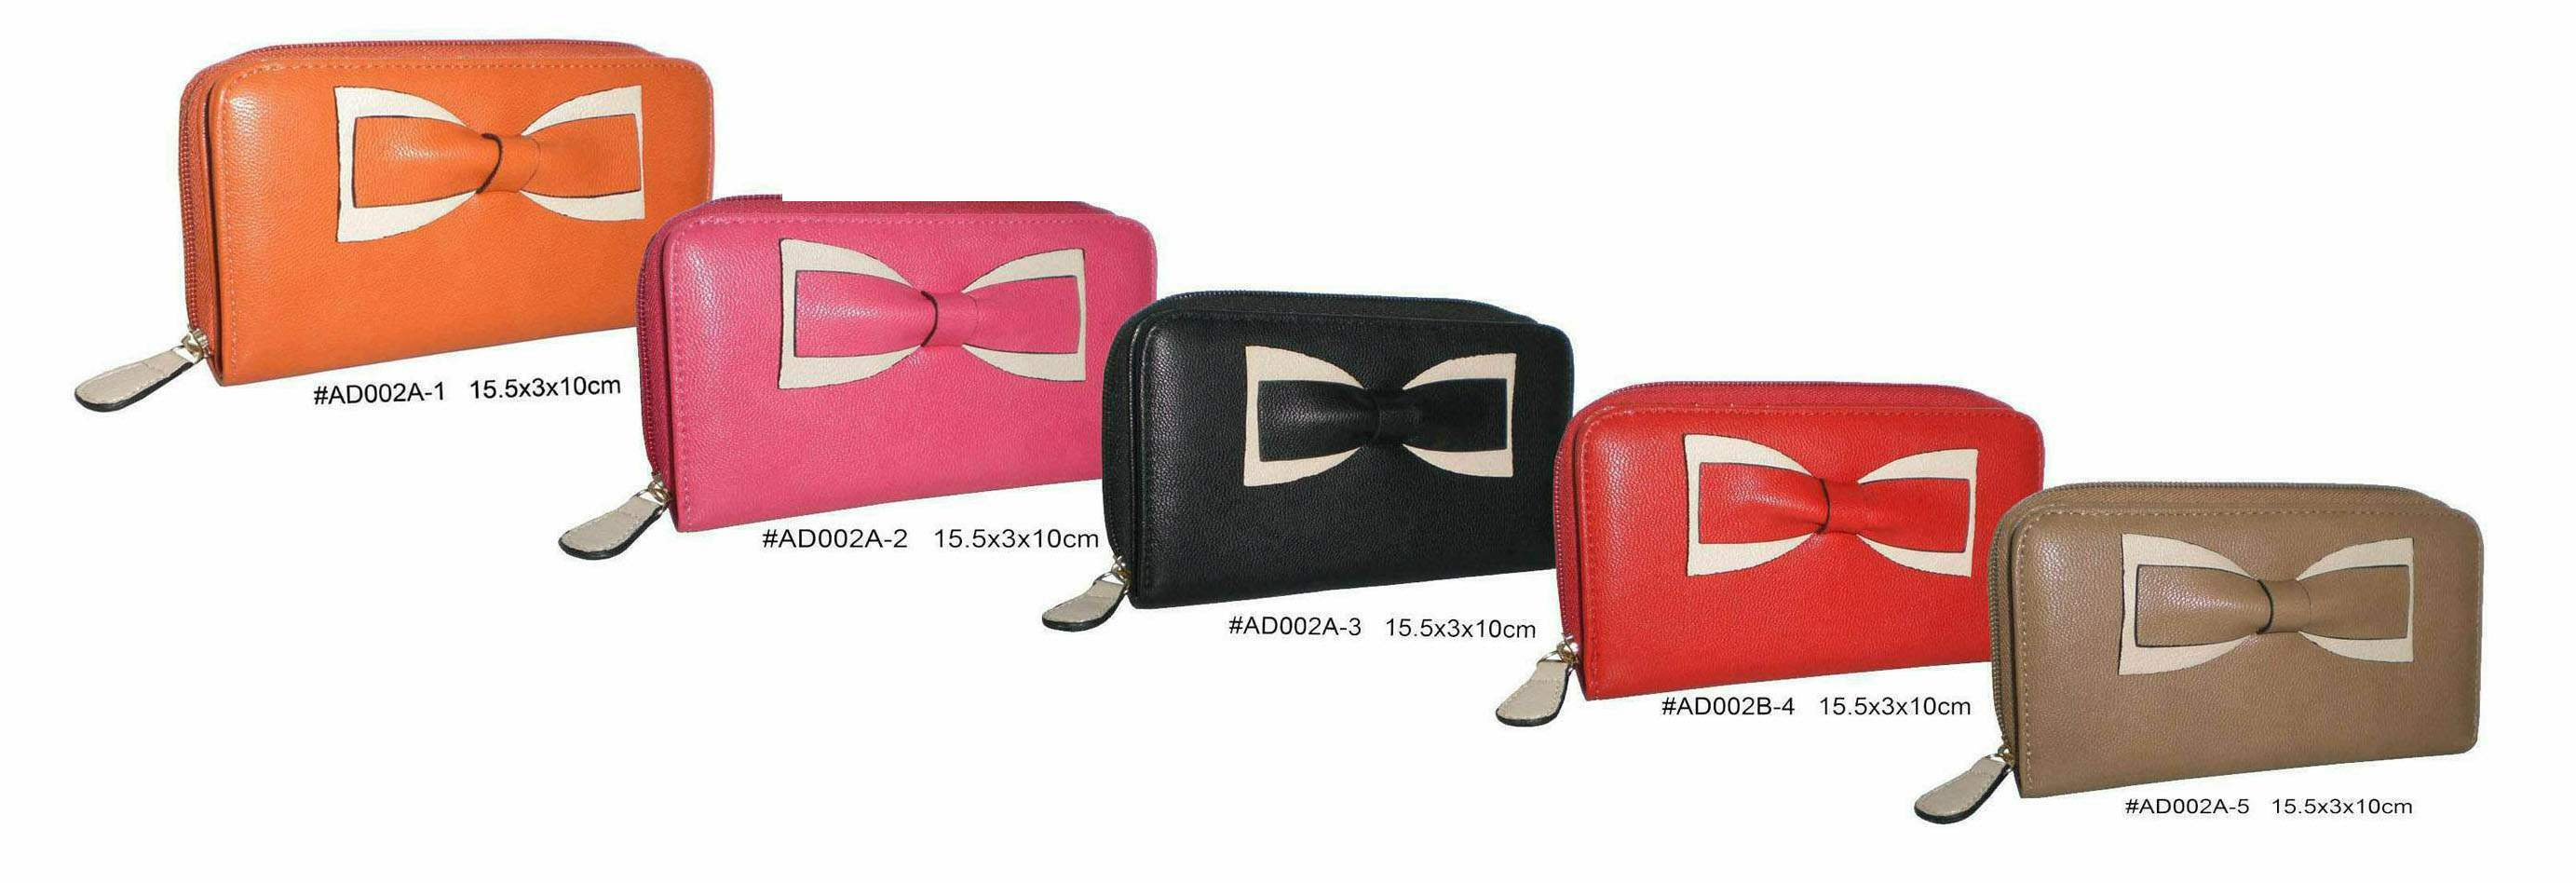 PU Ladies Wallet/Purse (AD002A)